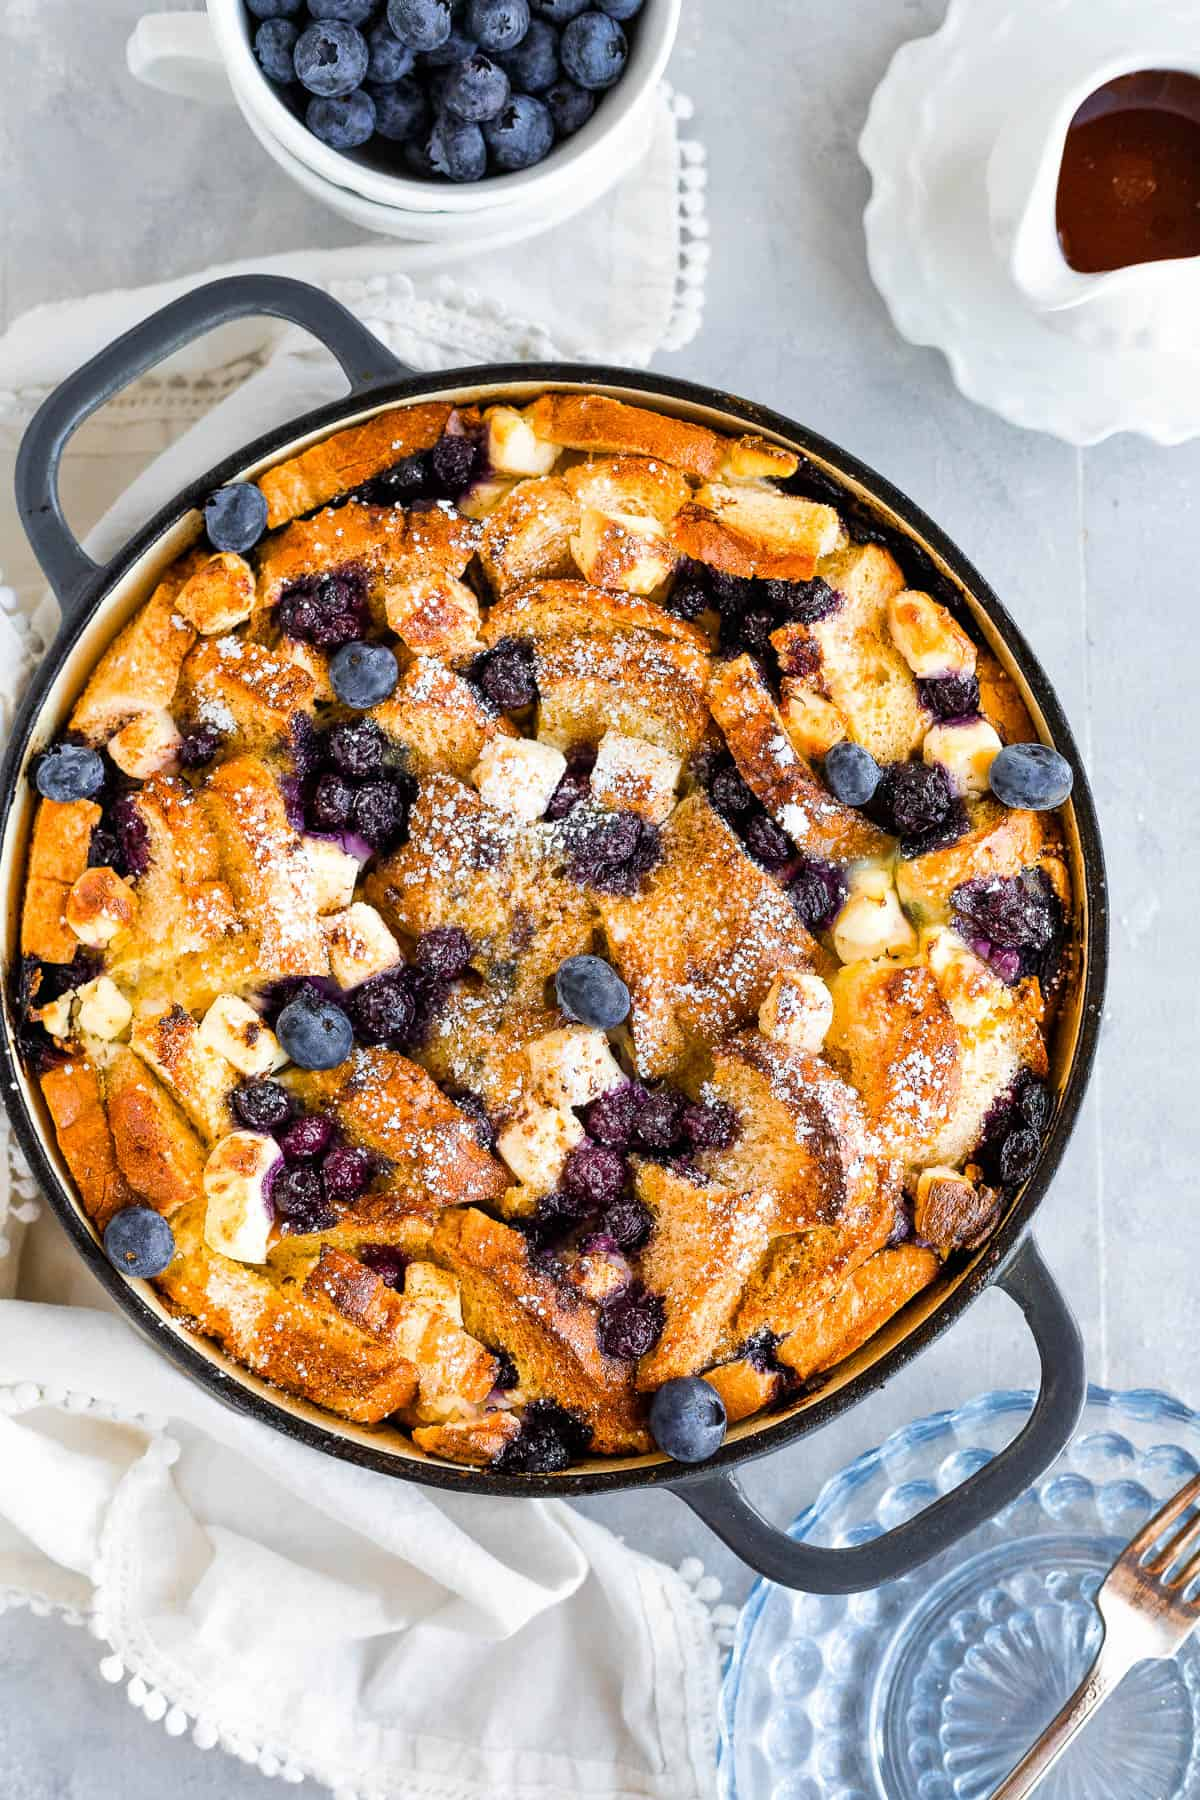 A Bird's-Eye View of a Blueberry French Toast Casserole Beside a Cup of Fresh Blueberries and a Spouted Measuring Cup of Maple Syrup